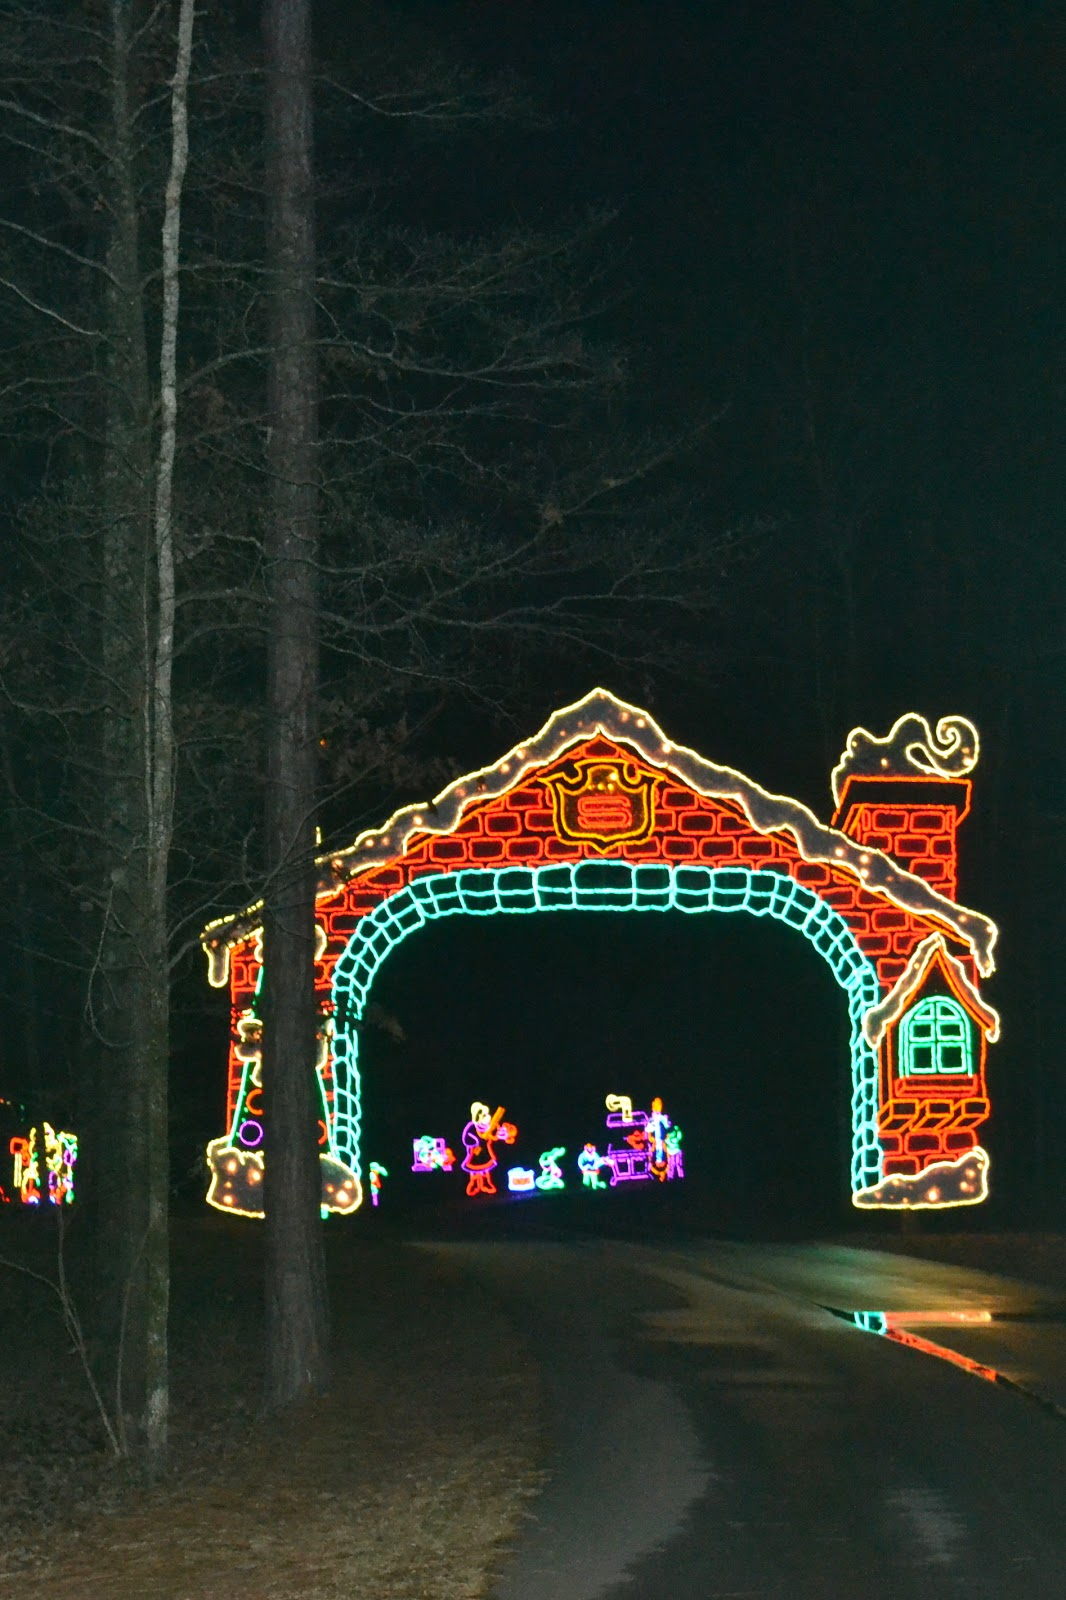 Hold on to your hats callaway gardens fantasy in lights - Callaway gardens christmas lights ...